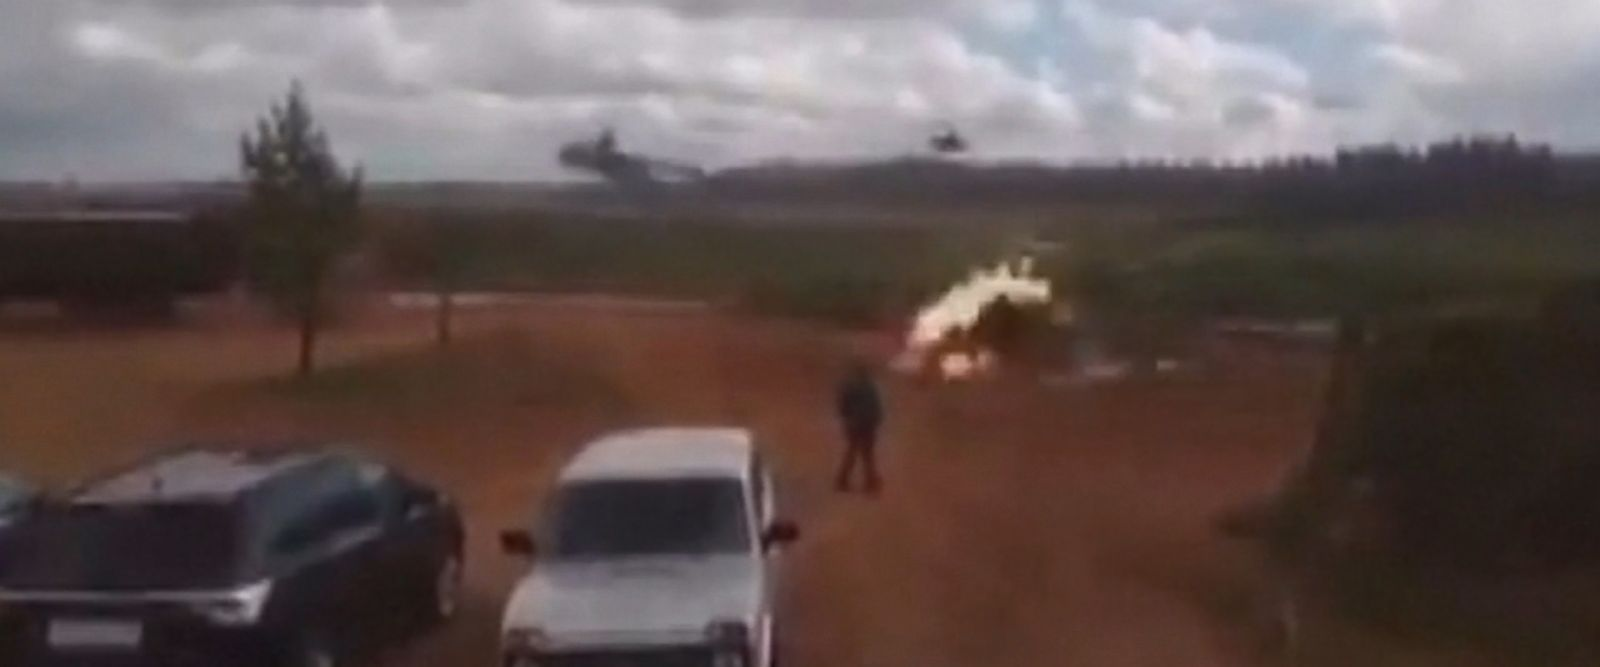 VIDEO: Russia's big Zapad 2017 military exercises entered the news again on Tuesday after a video emerged appearing to show a Russian attack helicopter firing rockets into a group of bystanders.